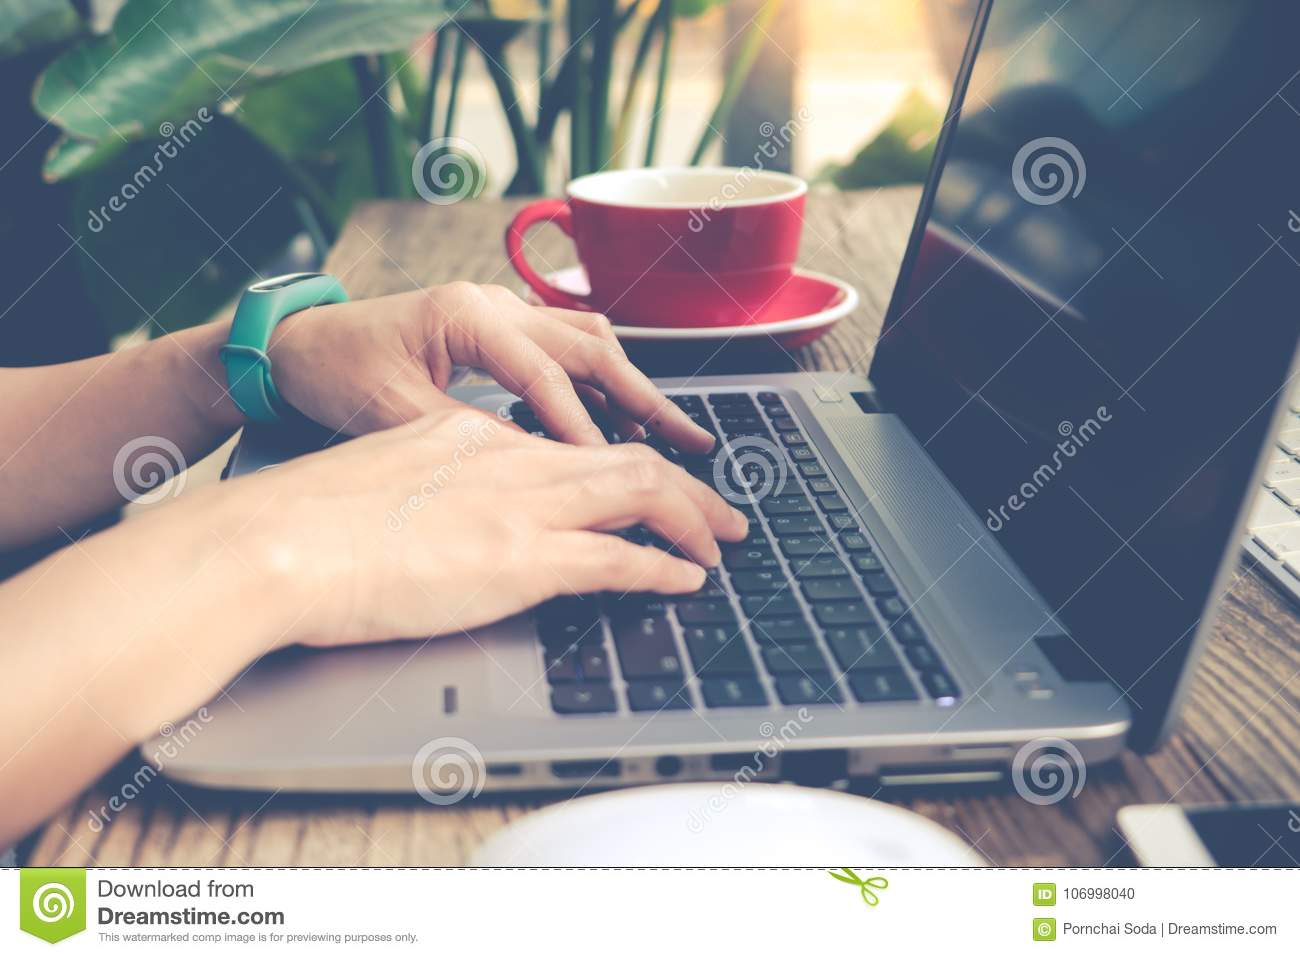 Woman using laptop, searching, checking, browsing information at the coffee shop, matte and noise filter apply